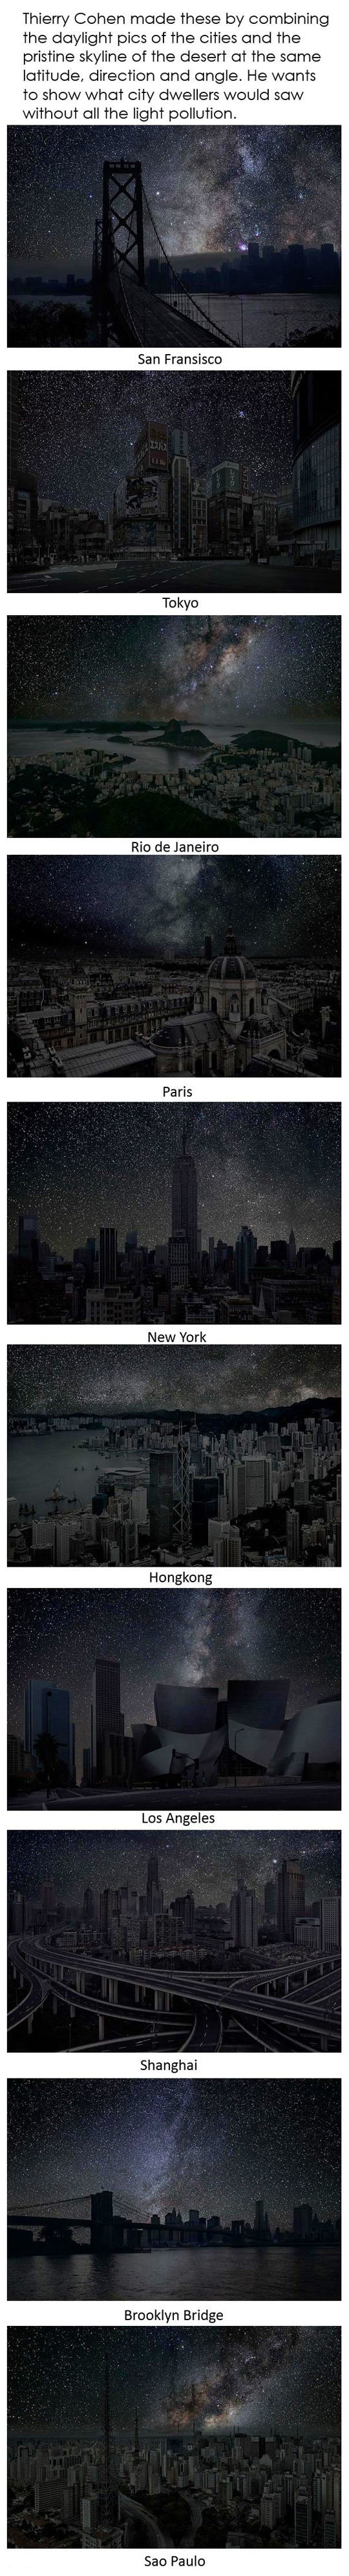 Beautiful Light Pollution Ideas On Pinterest Canoeing - Beautiful video imagines cities without light pollution